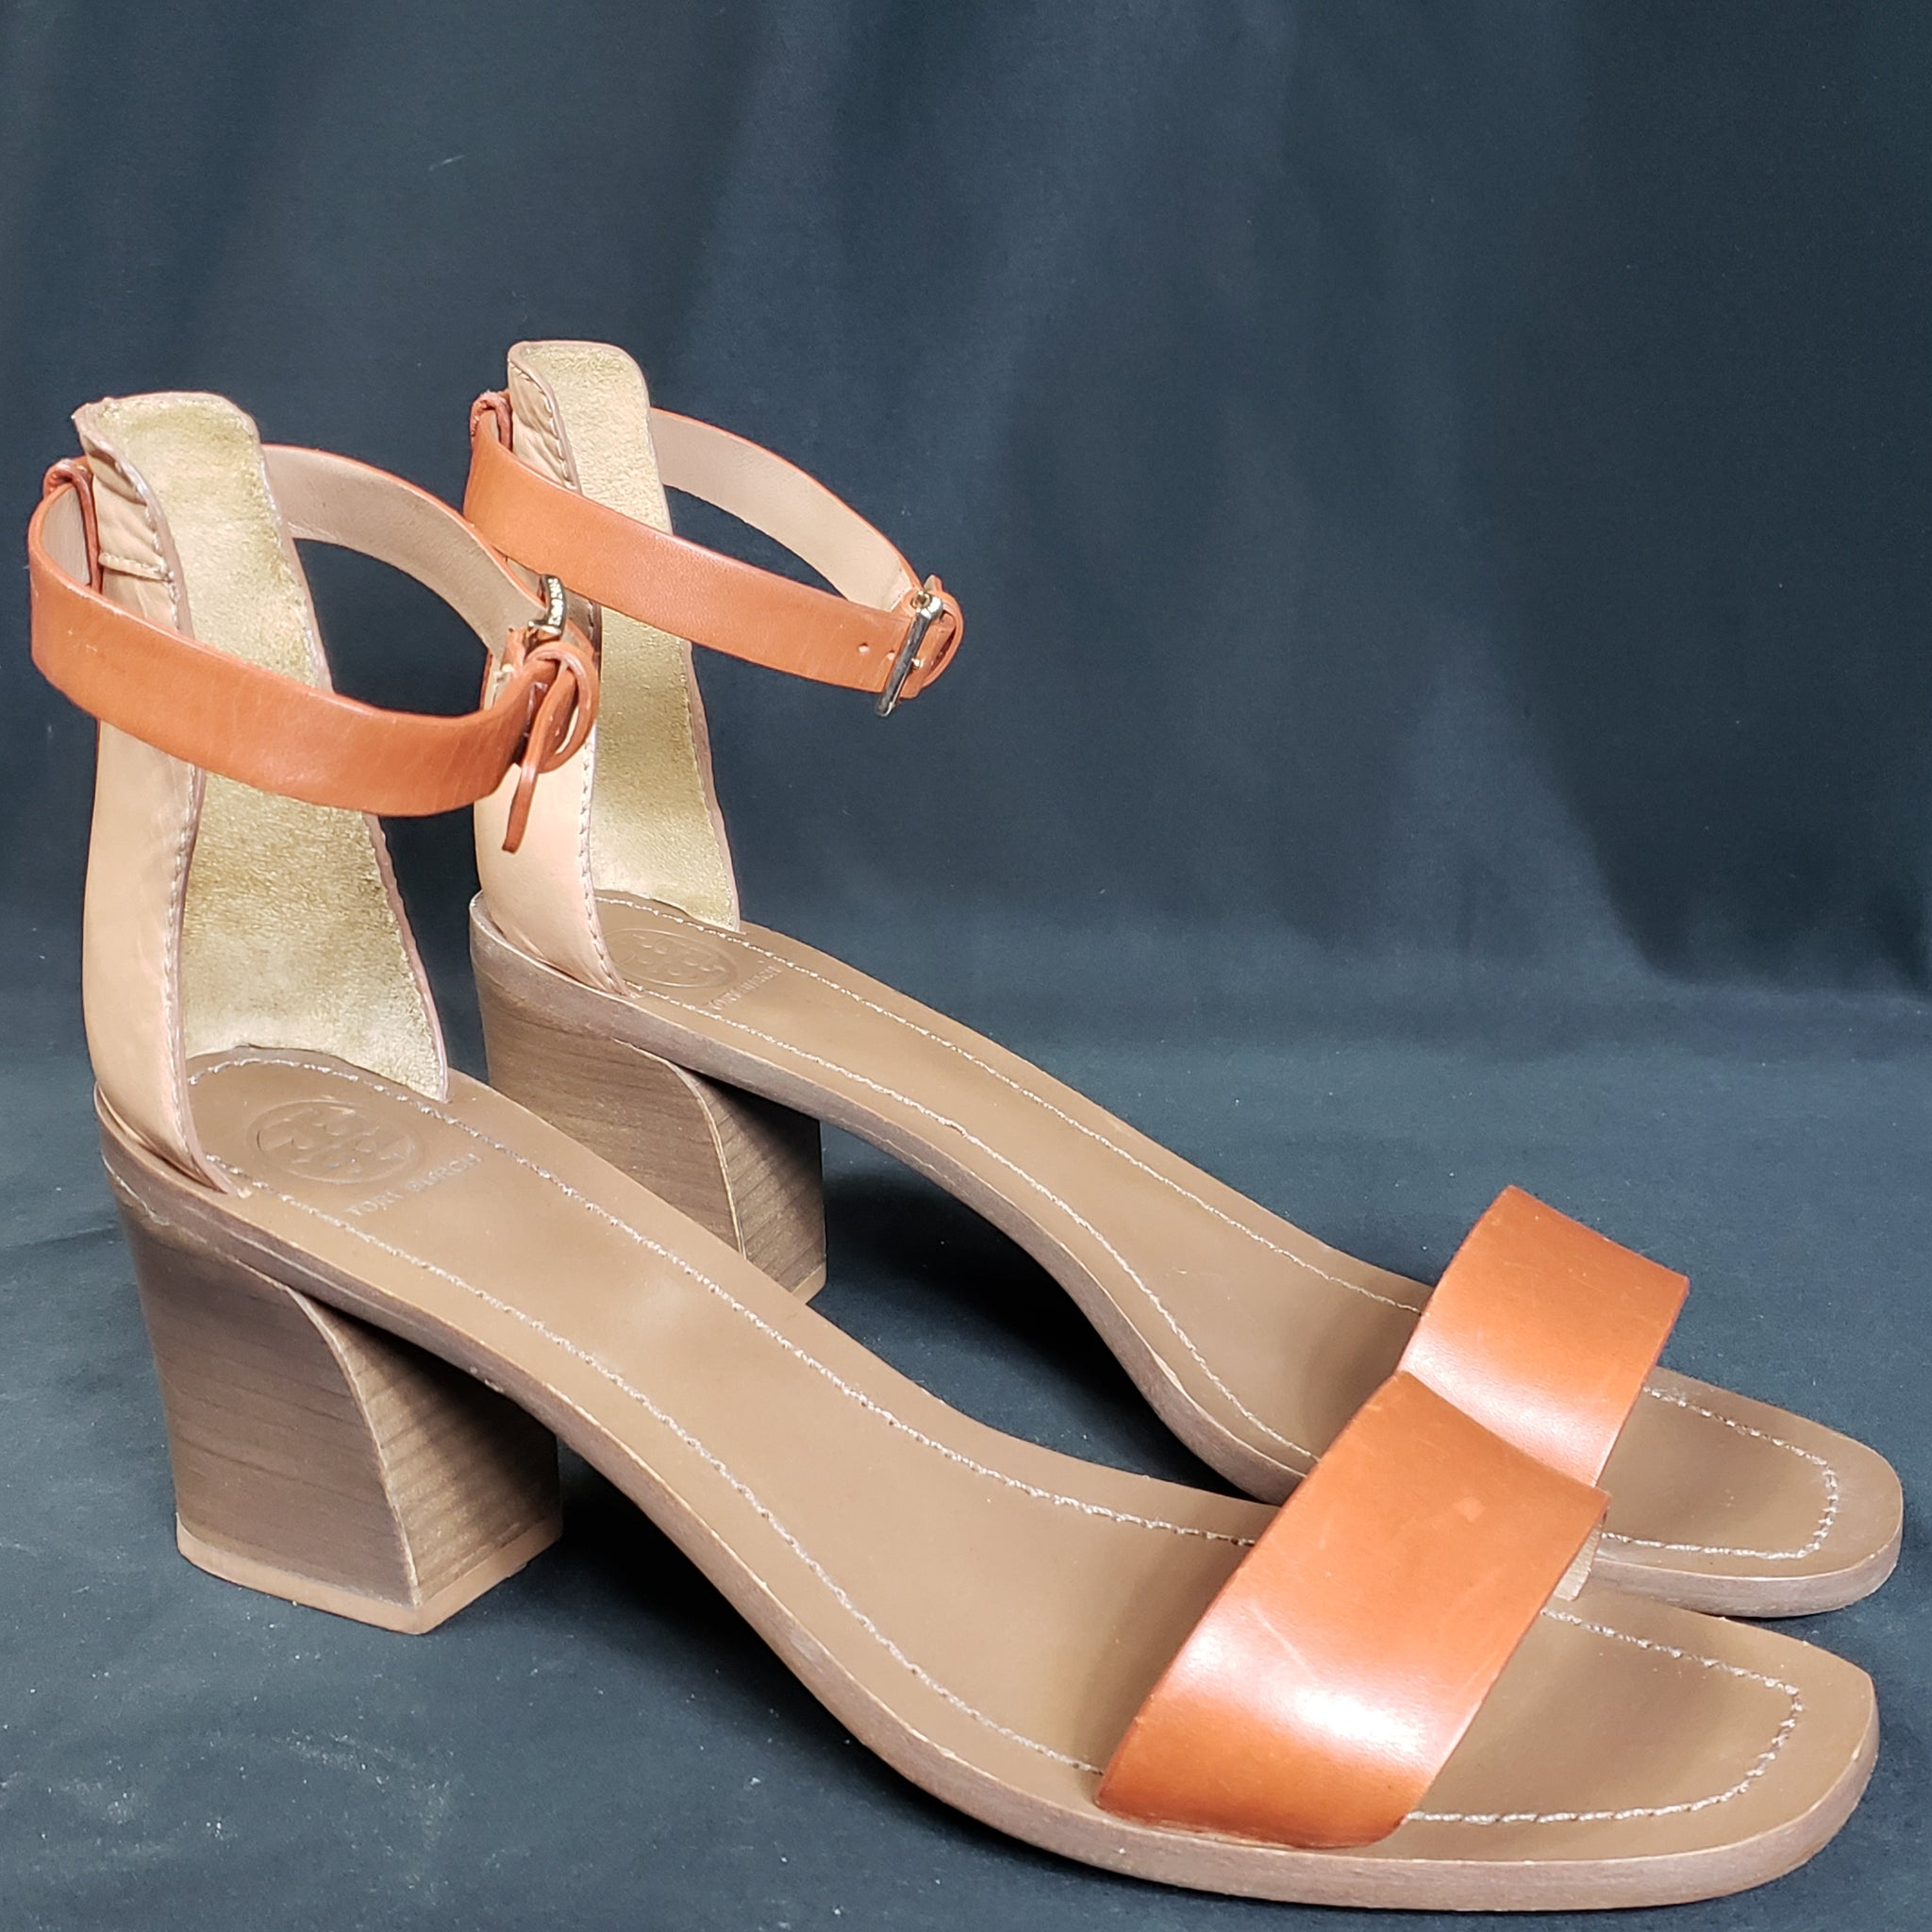 Tory Burch Color Block Chunky Heel Ankle Strap Sandals Size 10